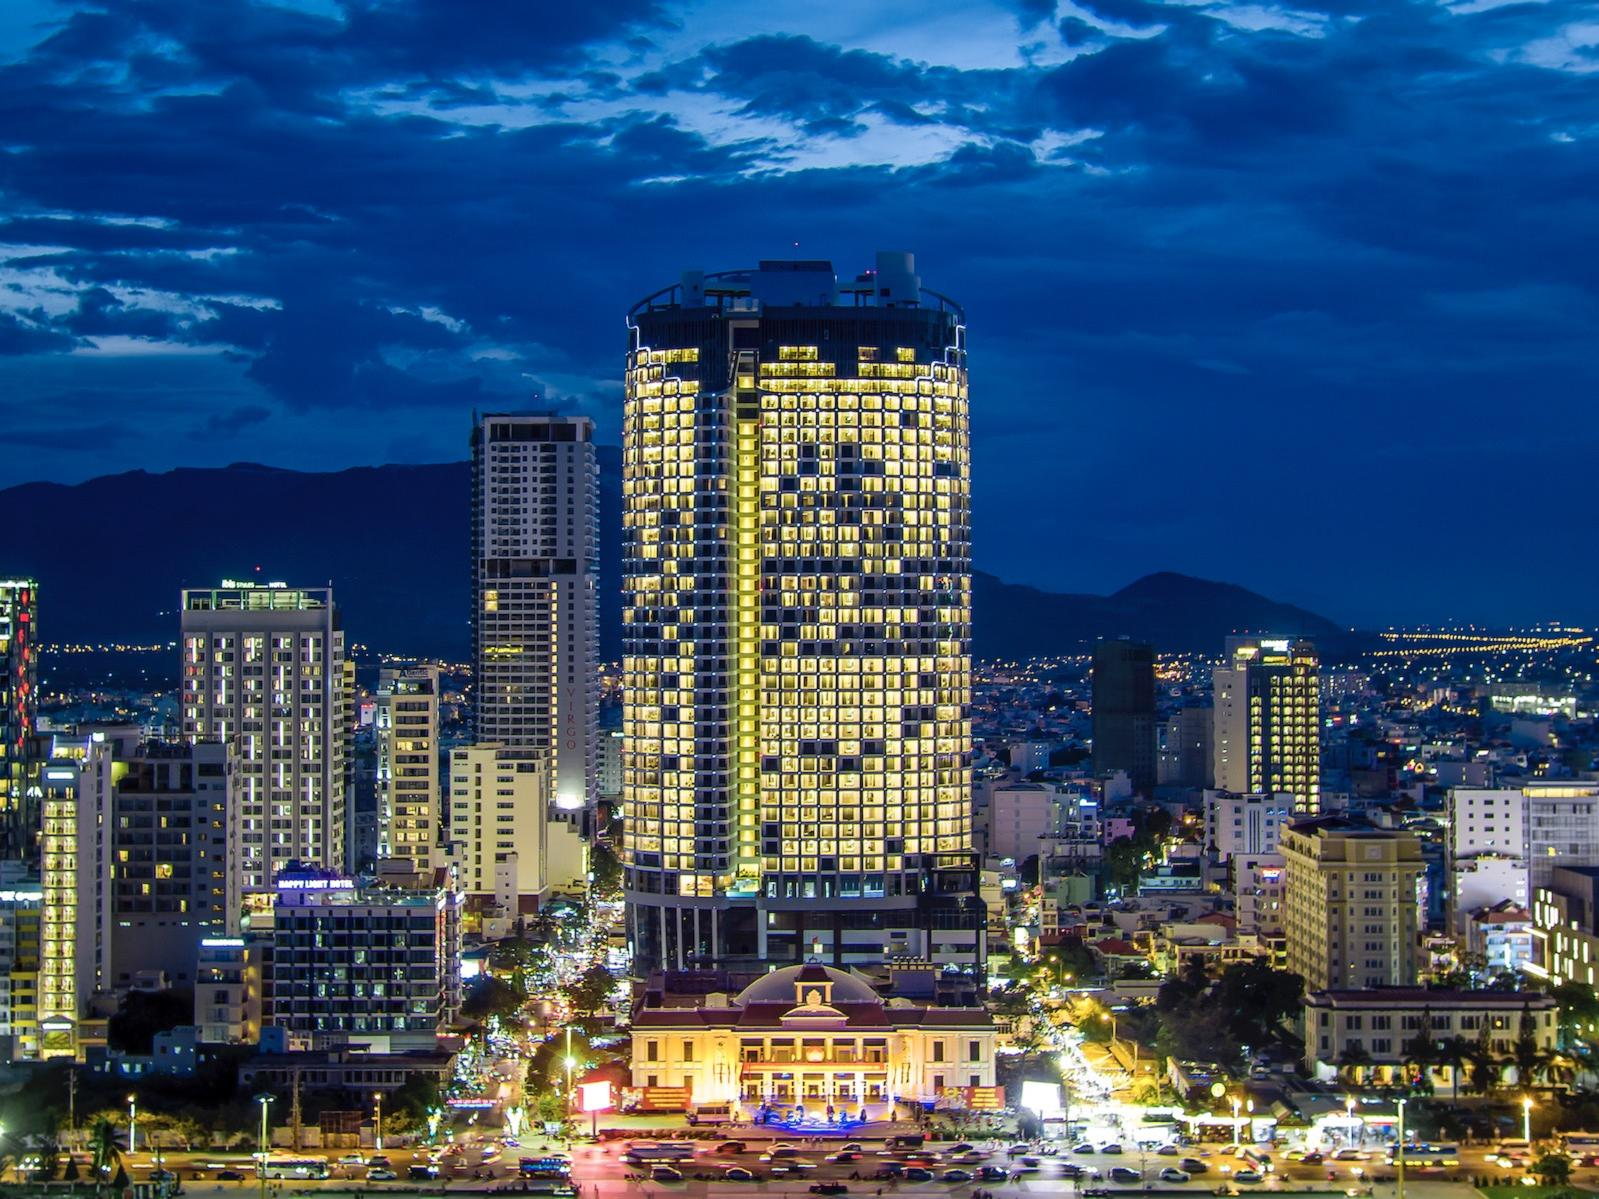 Eastin Grand Hotel Nha Trang's Facade - Night View